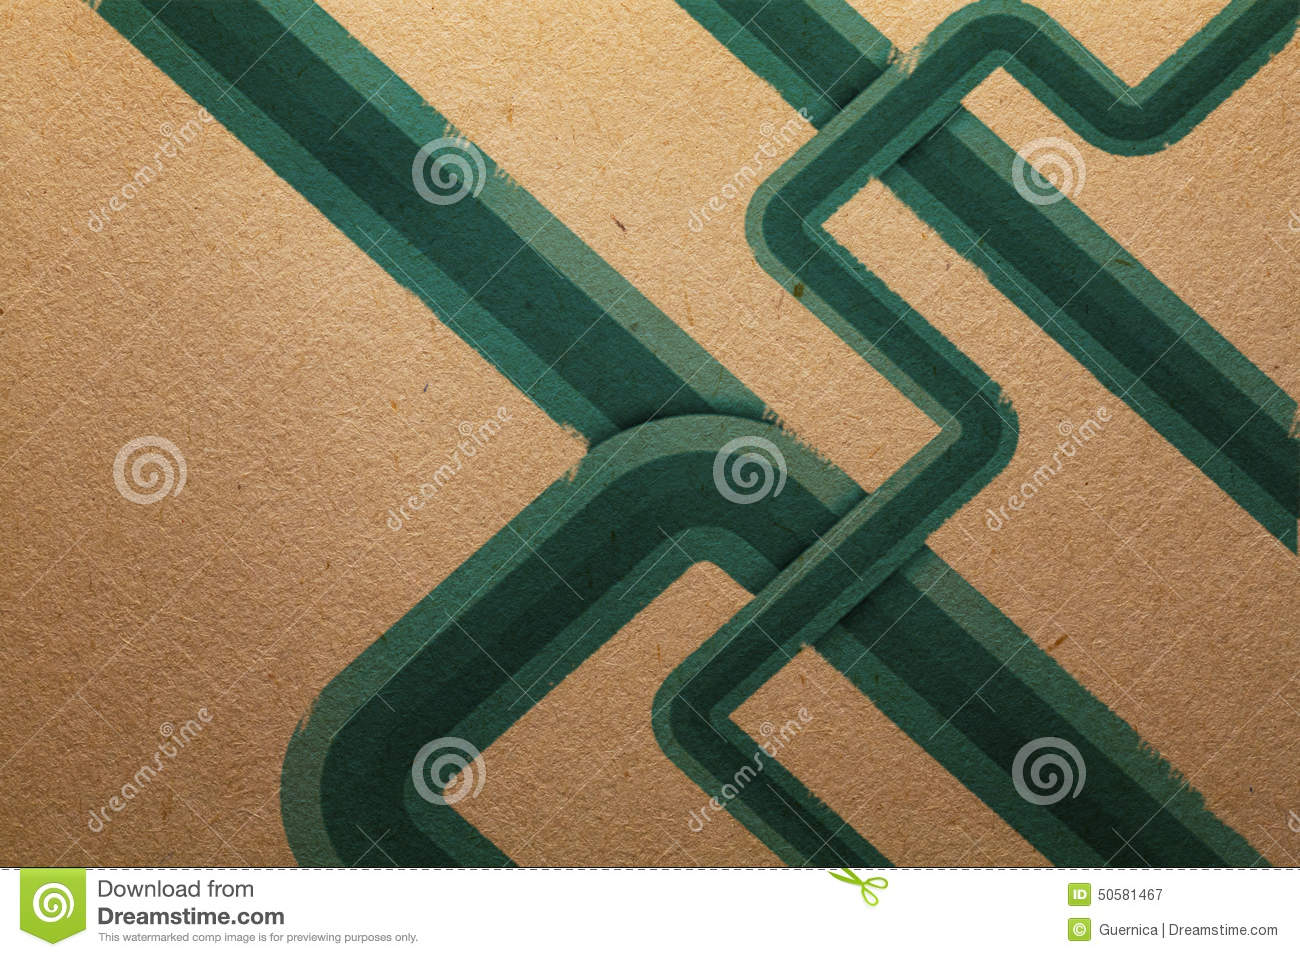 Green Energy stripes on recycled paper Grunge vintage background